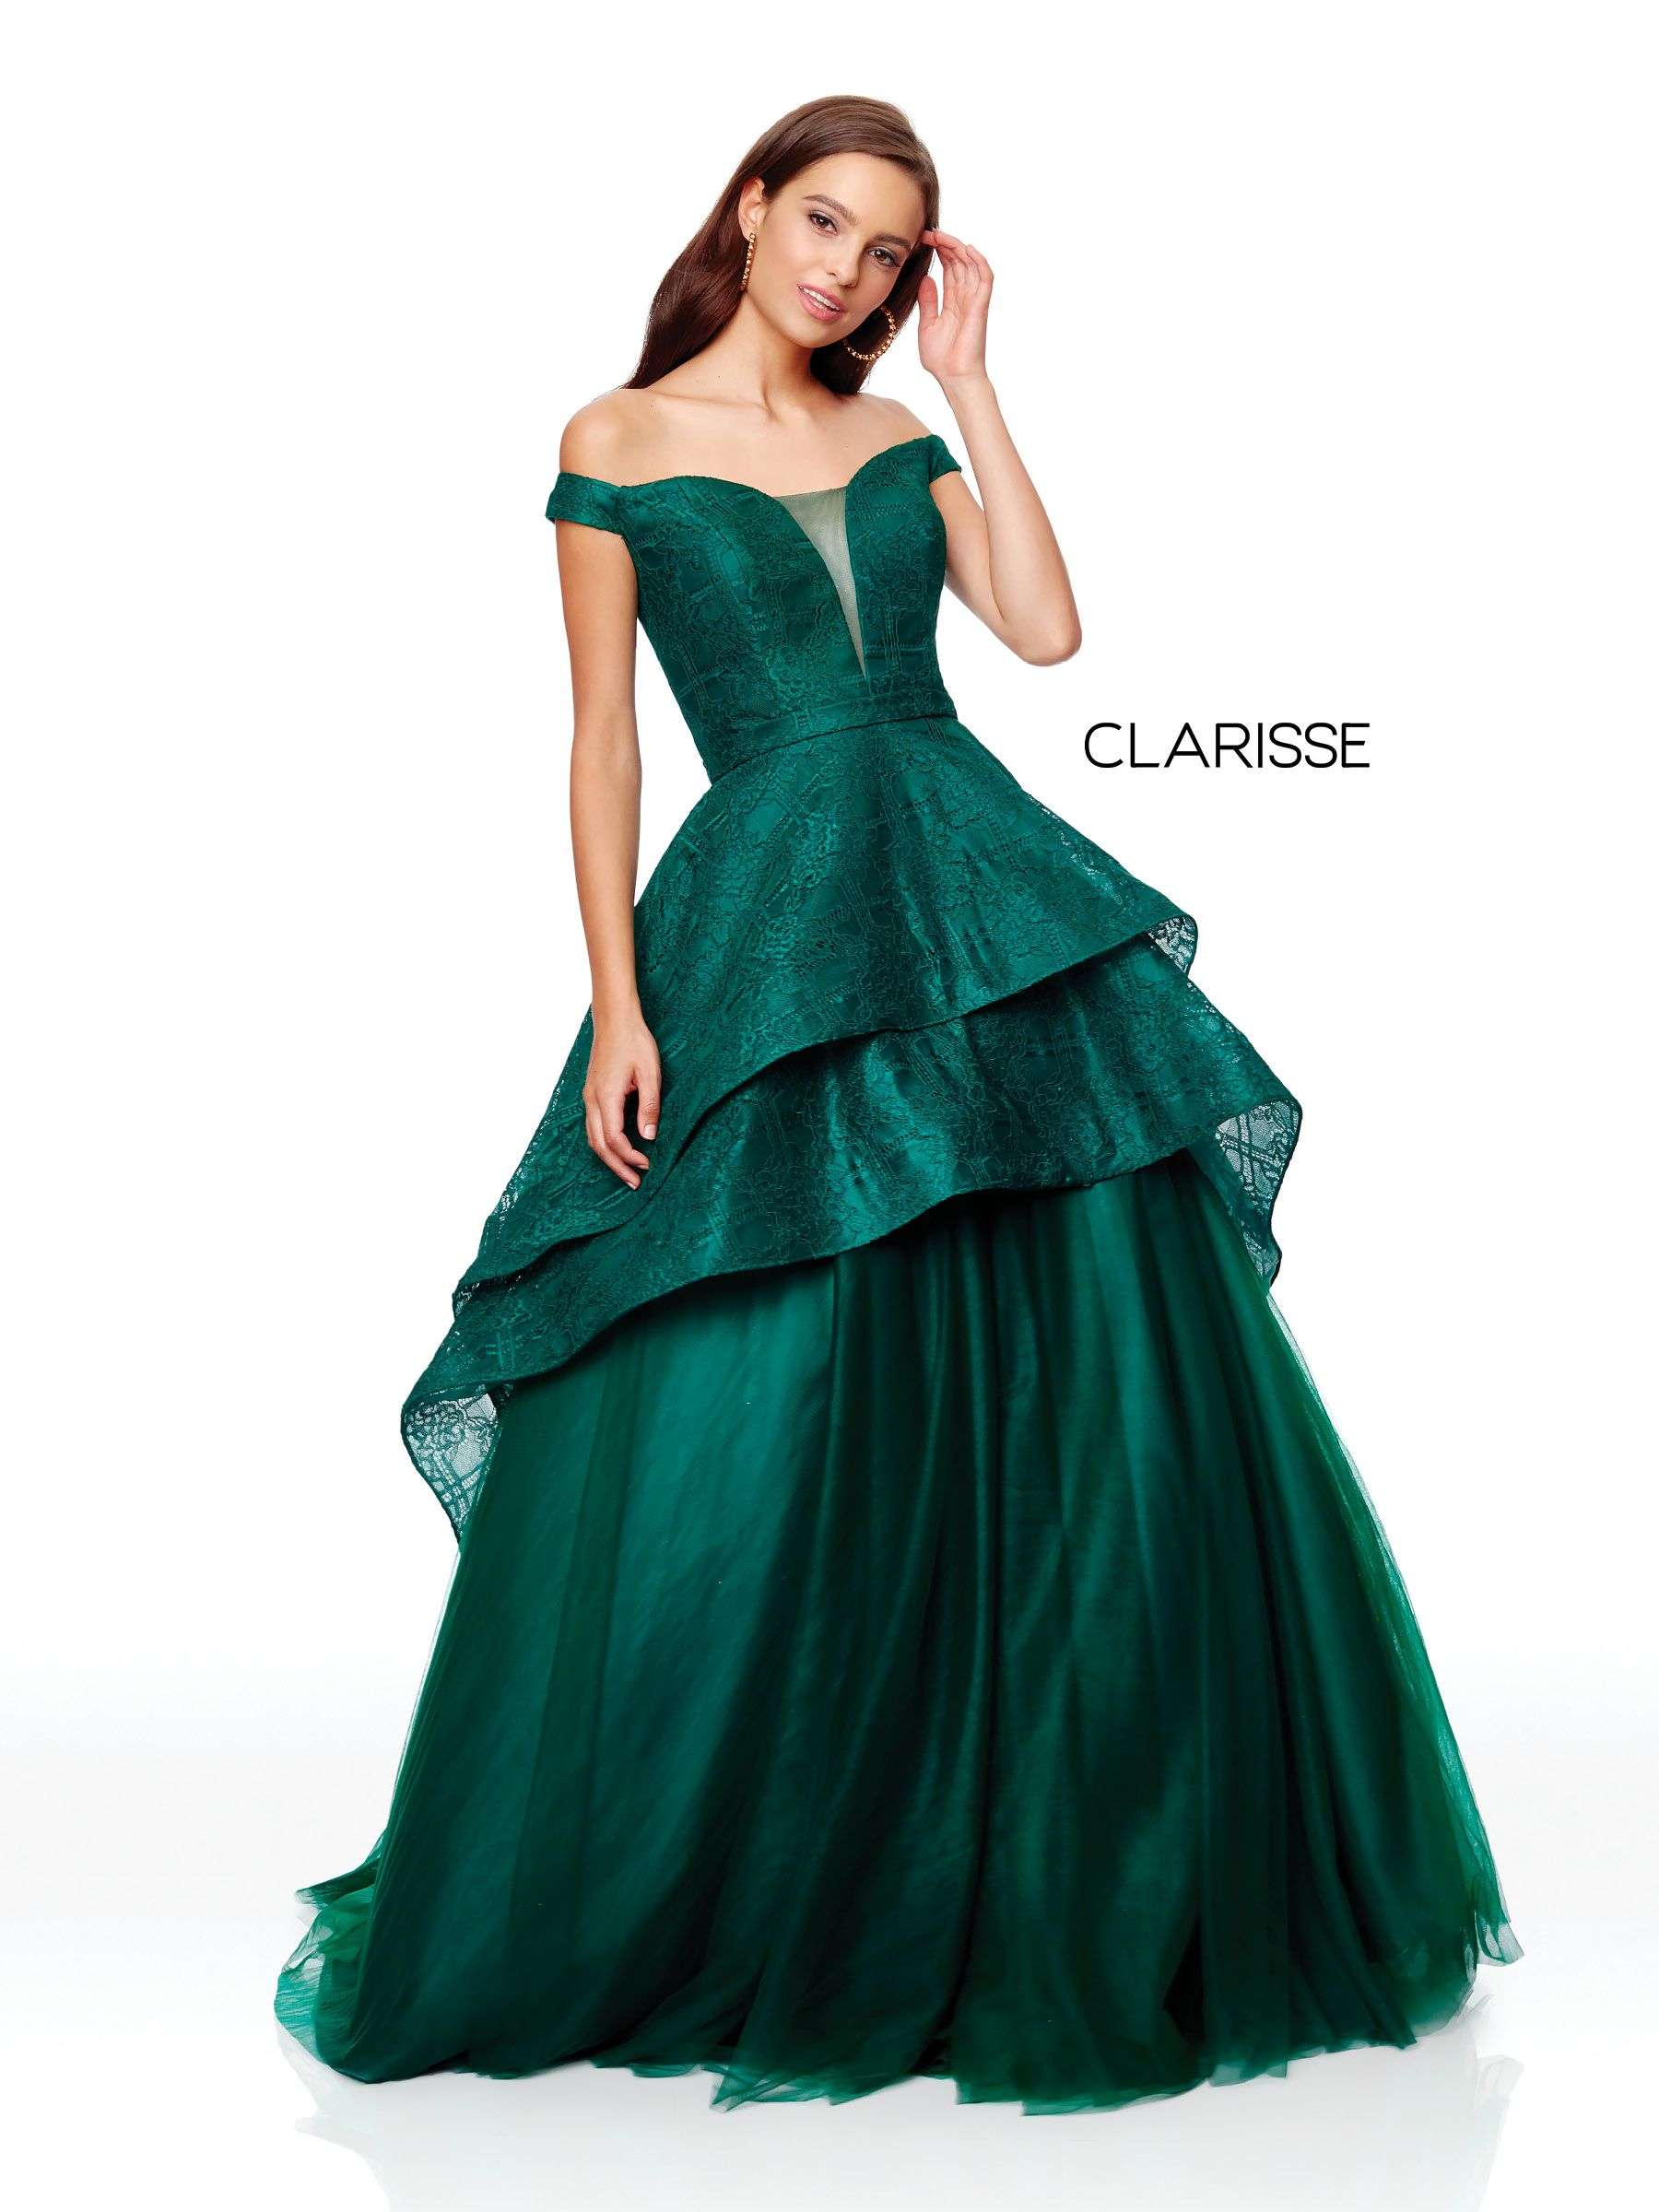 85a4d10b975 3730 - Forest green off the shoulder high low prom dress with a detachable  skirt